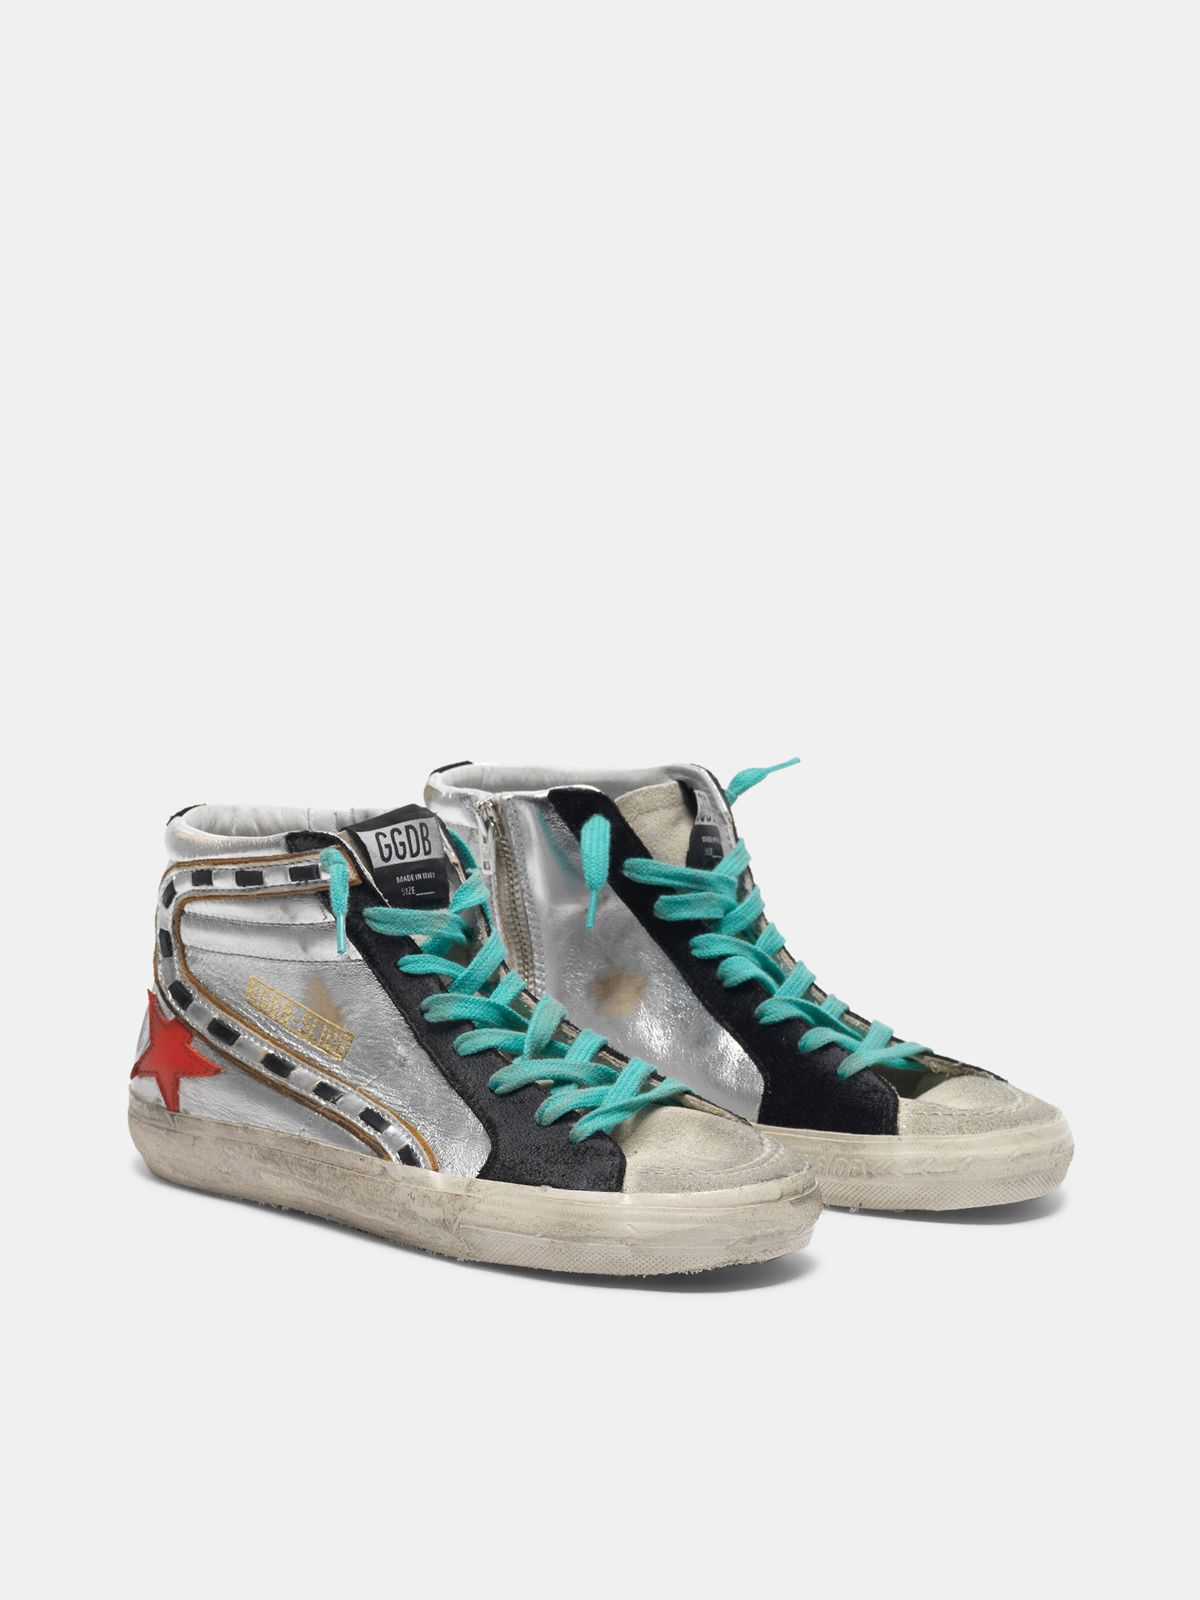 Golden Goose - Slide sneakers in silver laminated leather with red star in